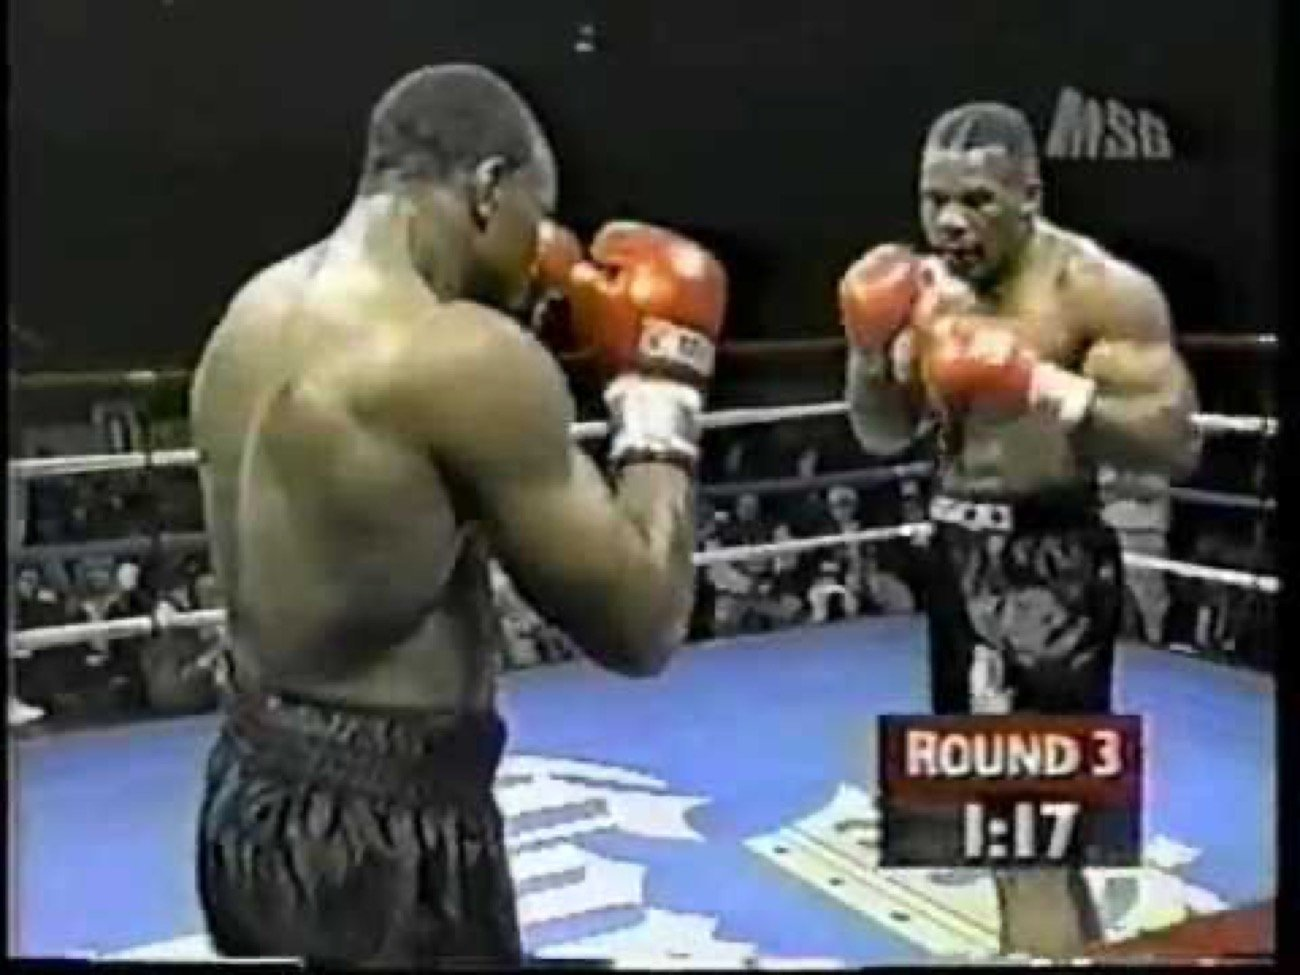 "Ike Ibeabuchi - Ikemefula Charles ""Ike"" Ibeabuchi (pronounced ""Ee-bay-uh-boo-chee"") Ikemefula was born in 1973 in Isouchi, Nigeria, and competed from 1994 to 1999 in the heavyweight division where he finished with a perfect (20-0-0, 15 KOs) record. If there was any heavyweight with the skill and power to become the dominant heavyweight in his era, it was Ibeabuchi—had he possessed the concomitant mental strength to fulfill that promise."